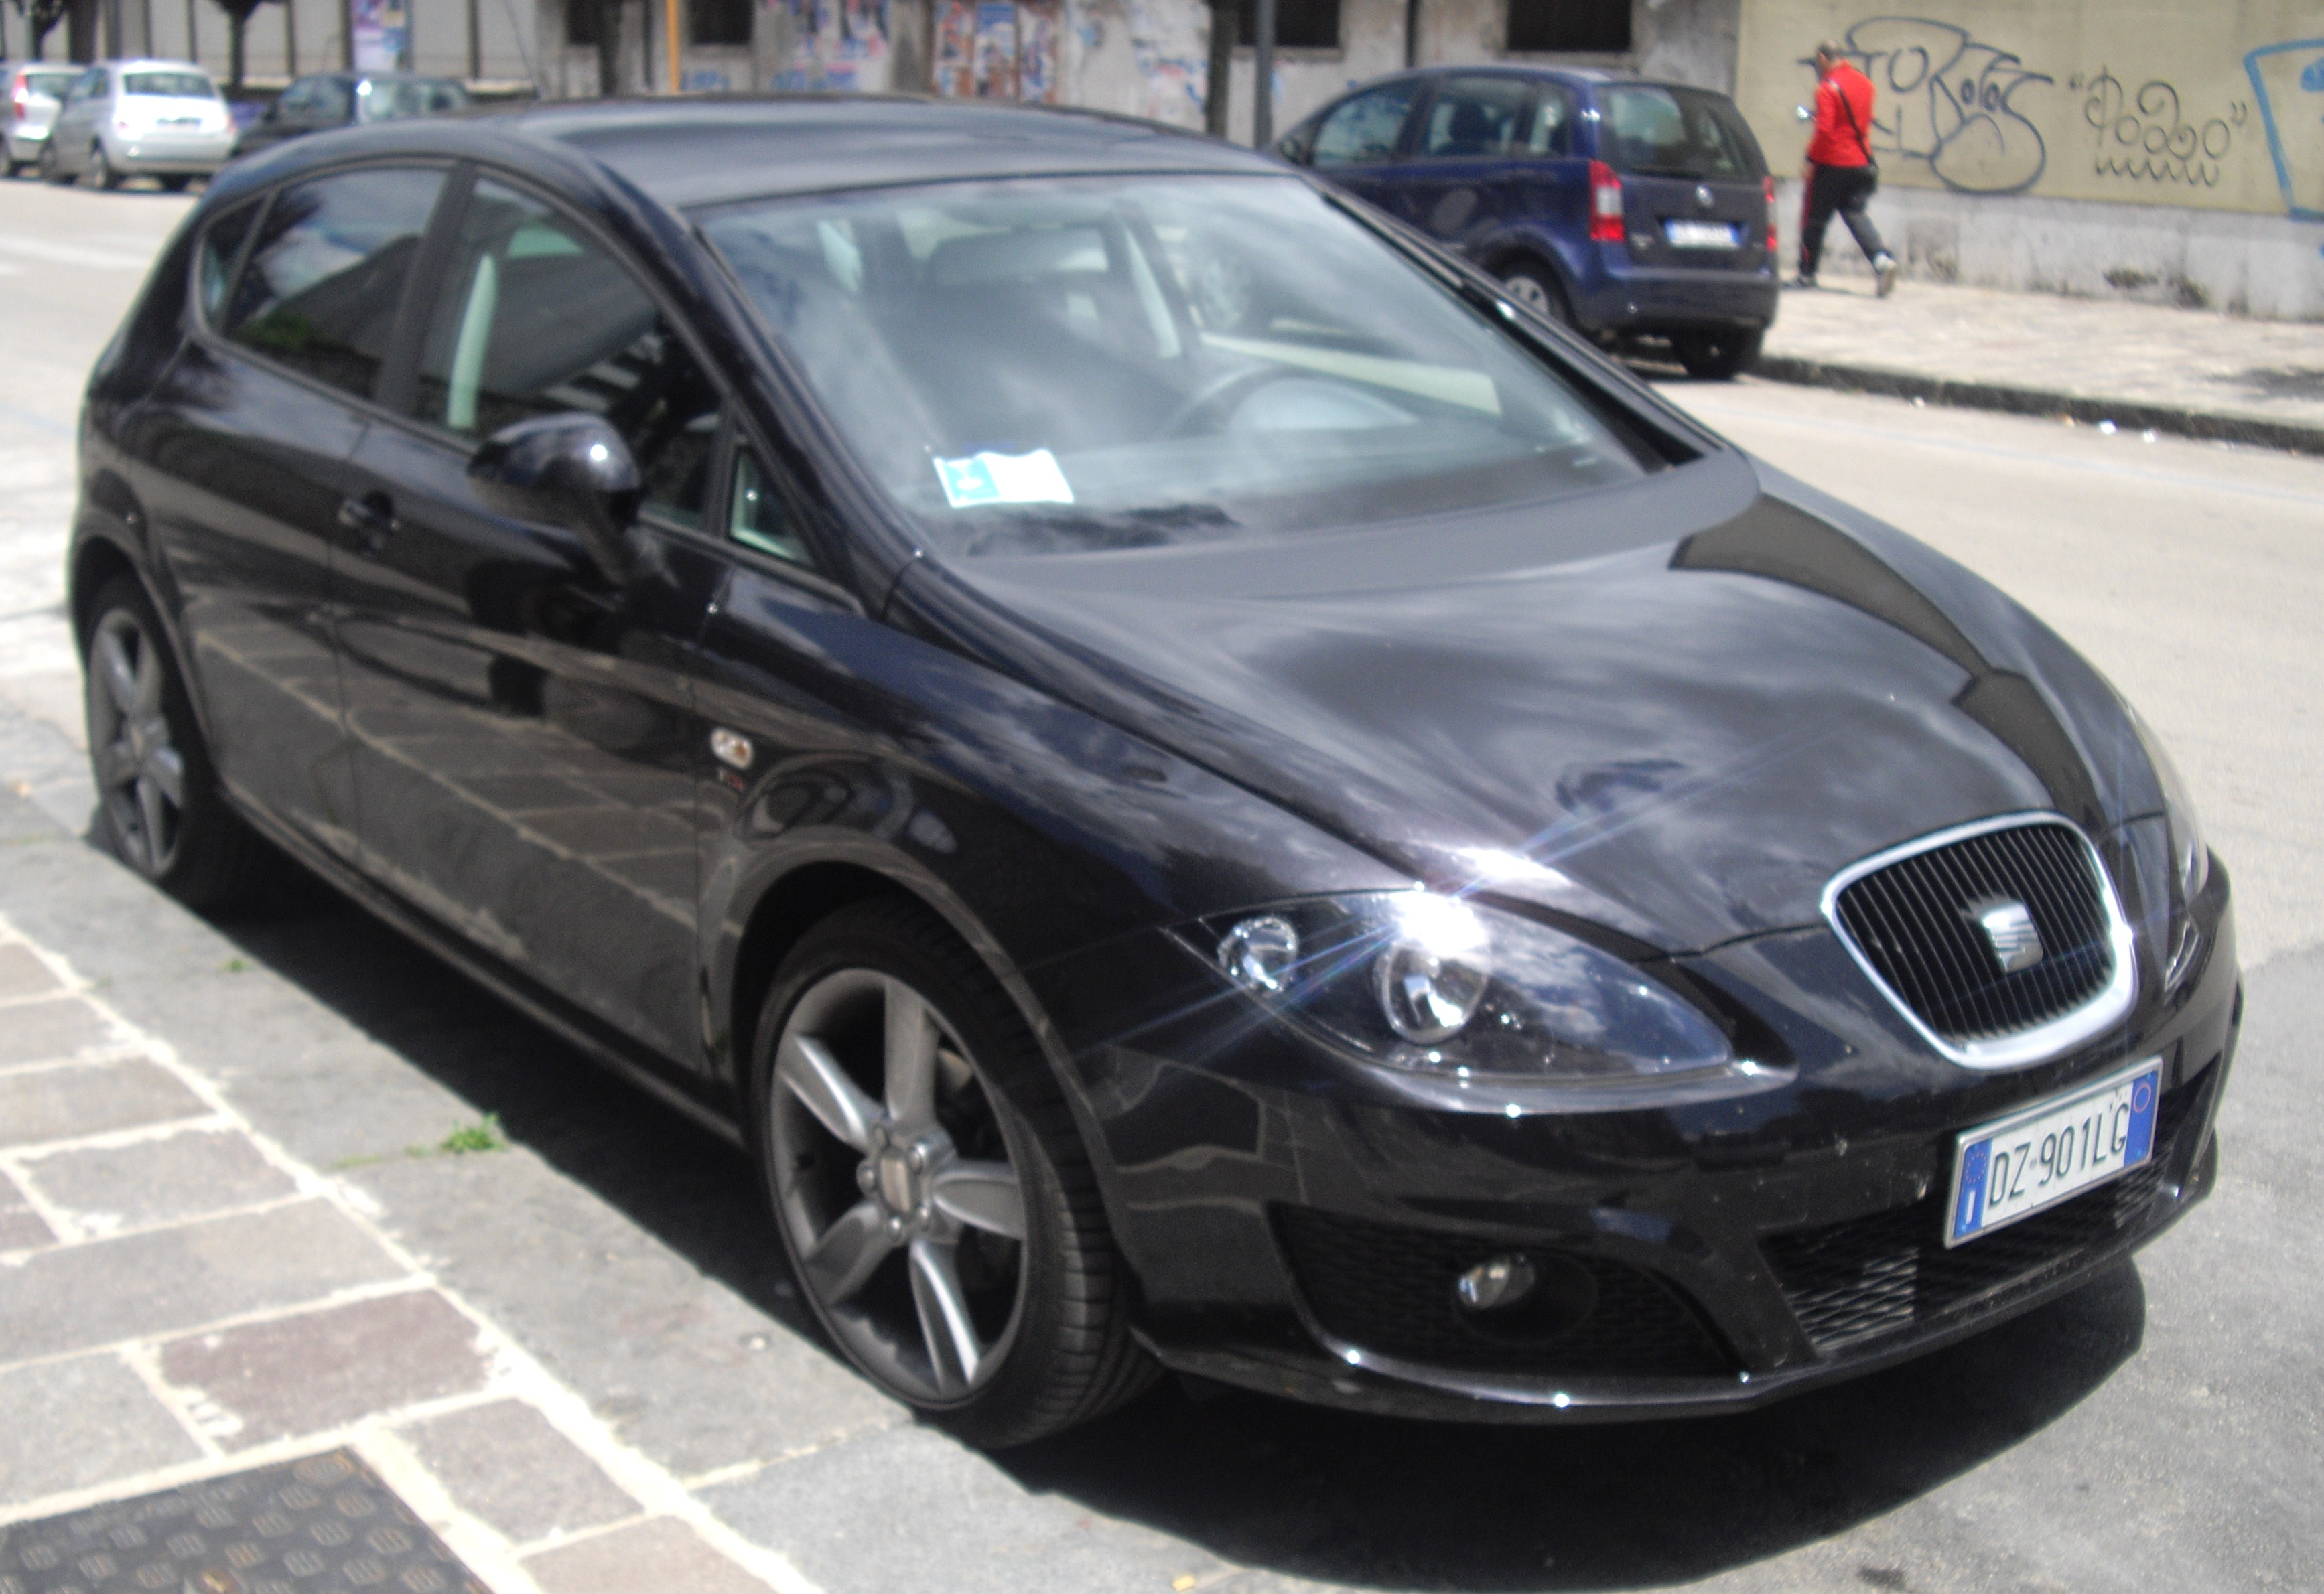 file 2010 seat leon facelift front jpg wikimedia commons. Black Bedroom Furniture Sets. Home Design Ideas